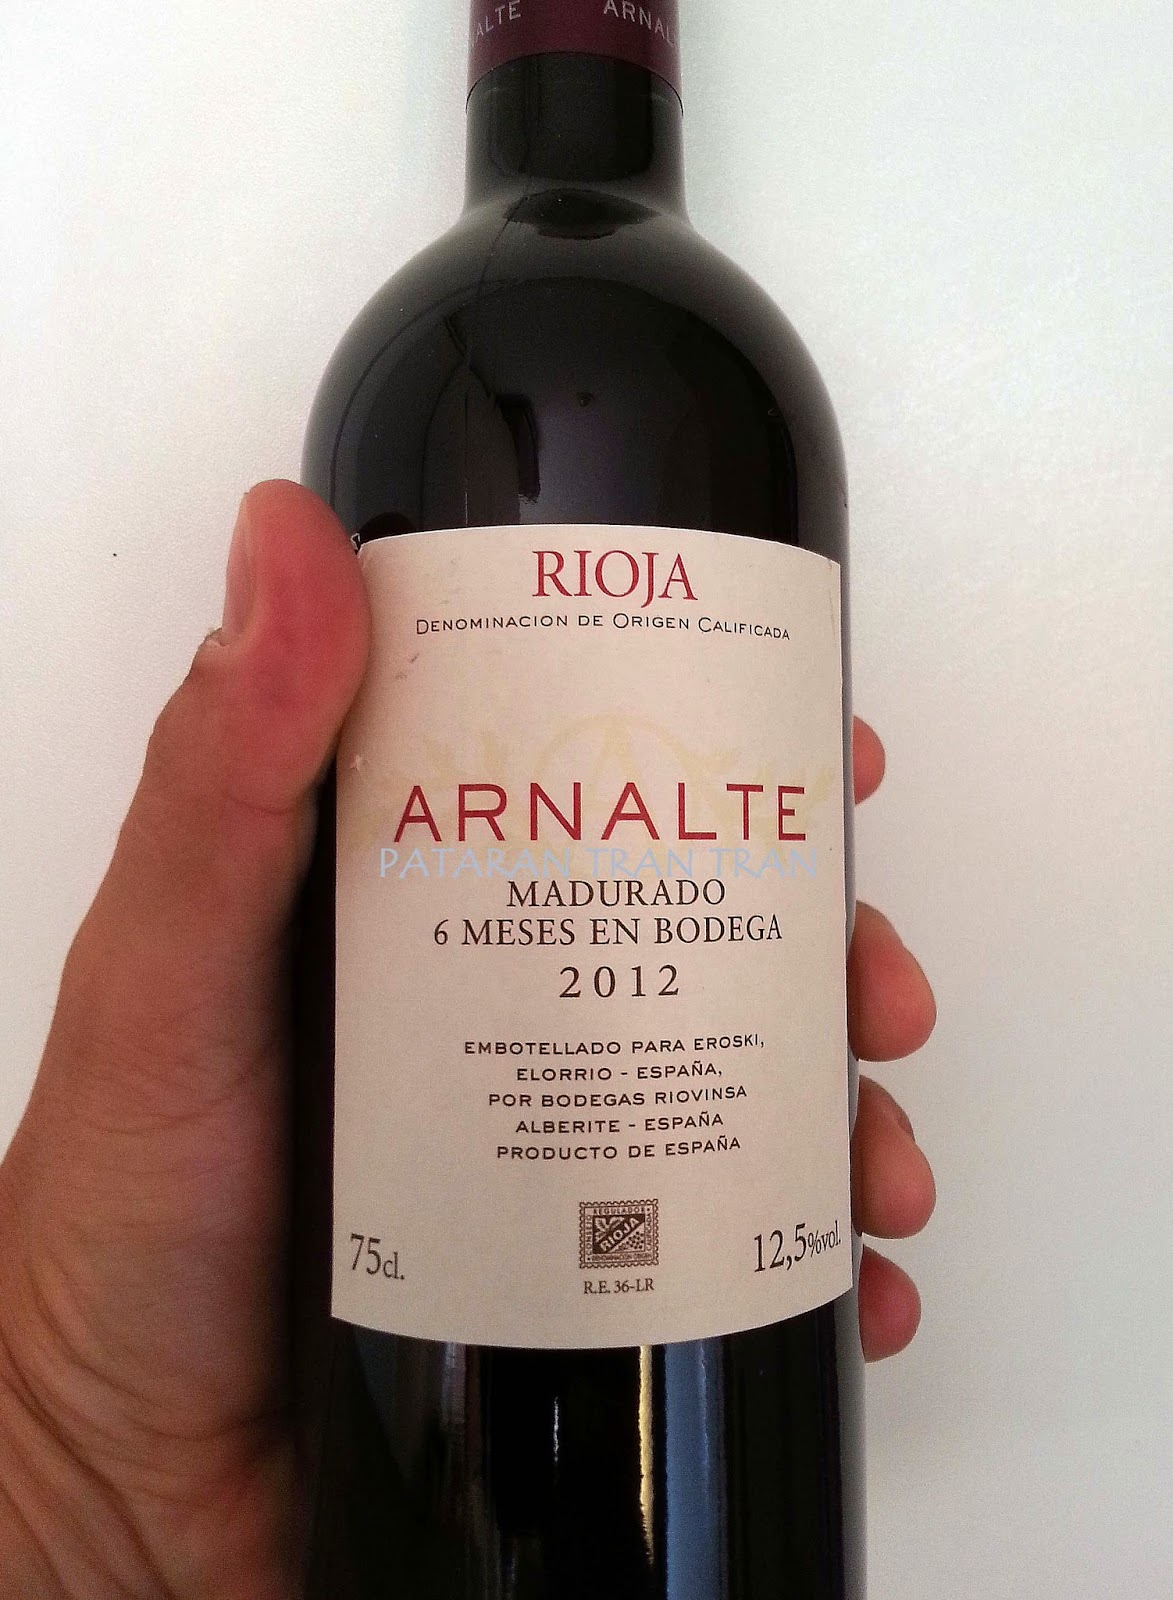 Arnalte 2012. Roble. Rioja.